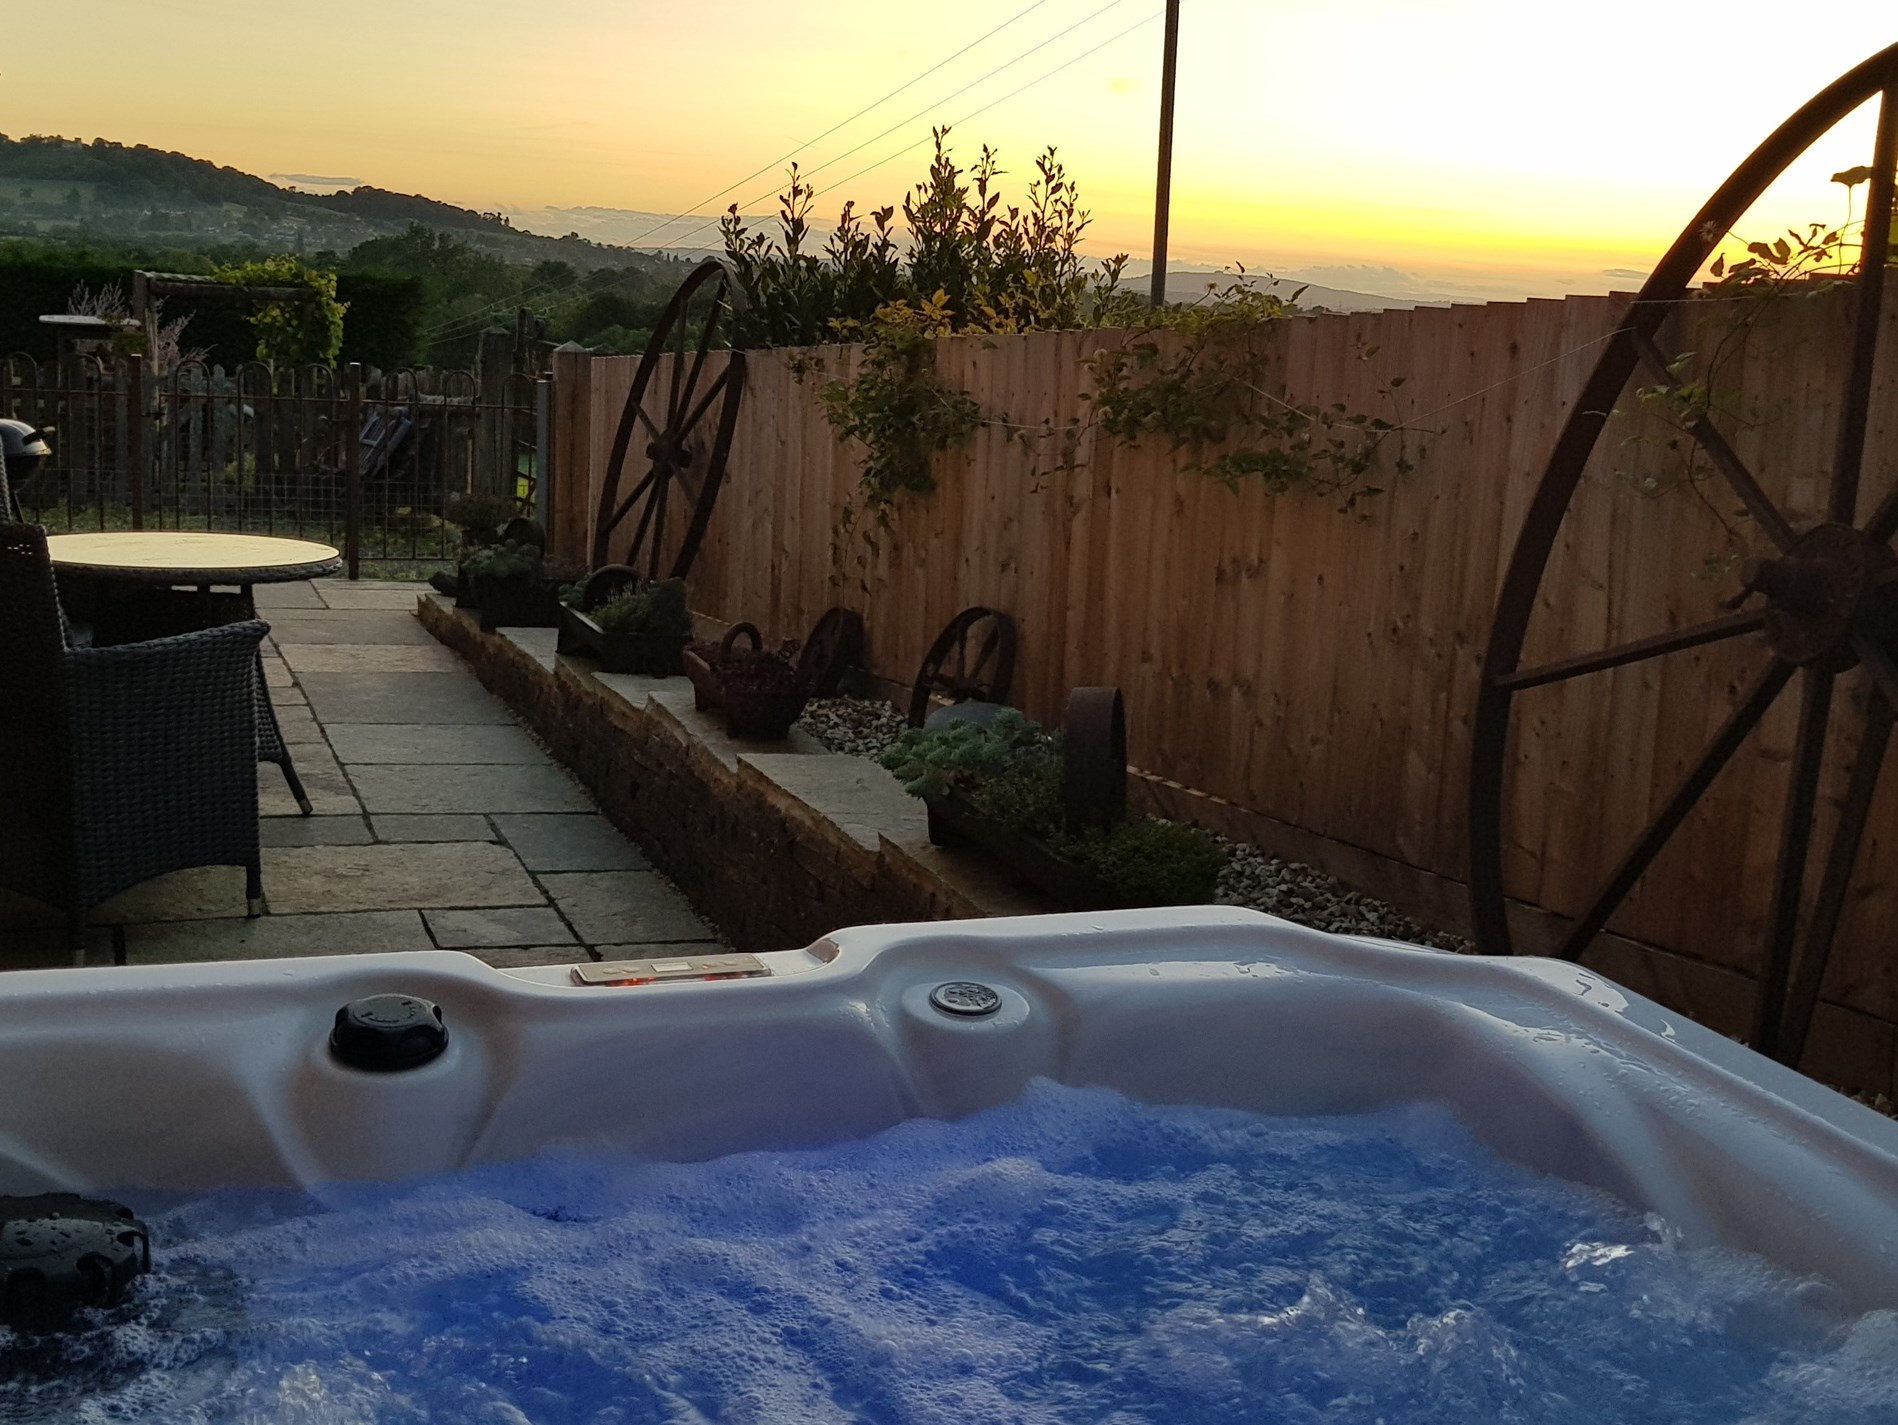 Enjoy the sun setting from your private hot tub